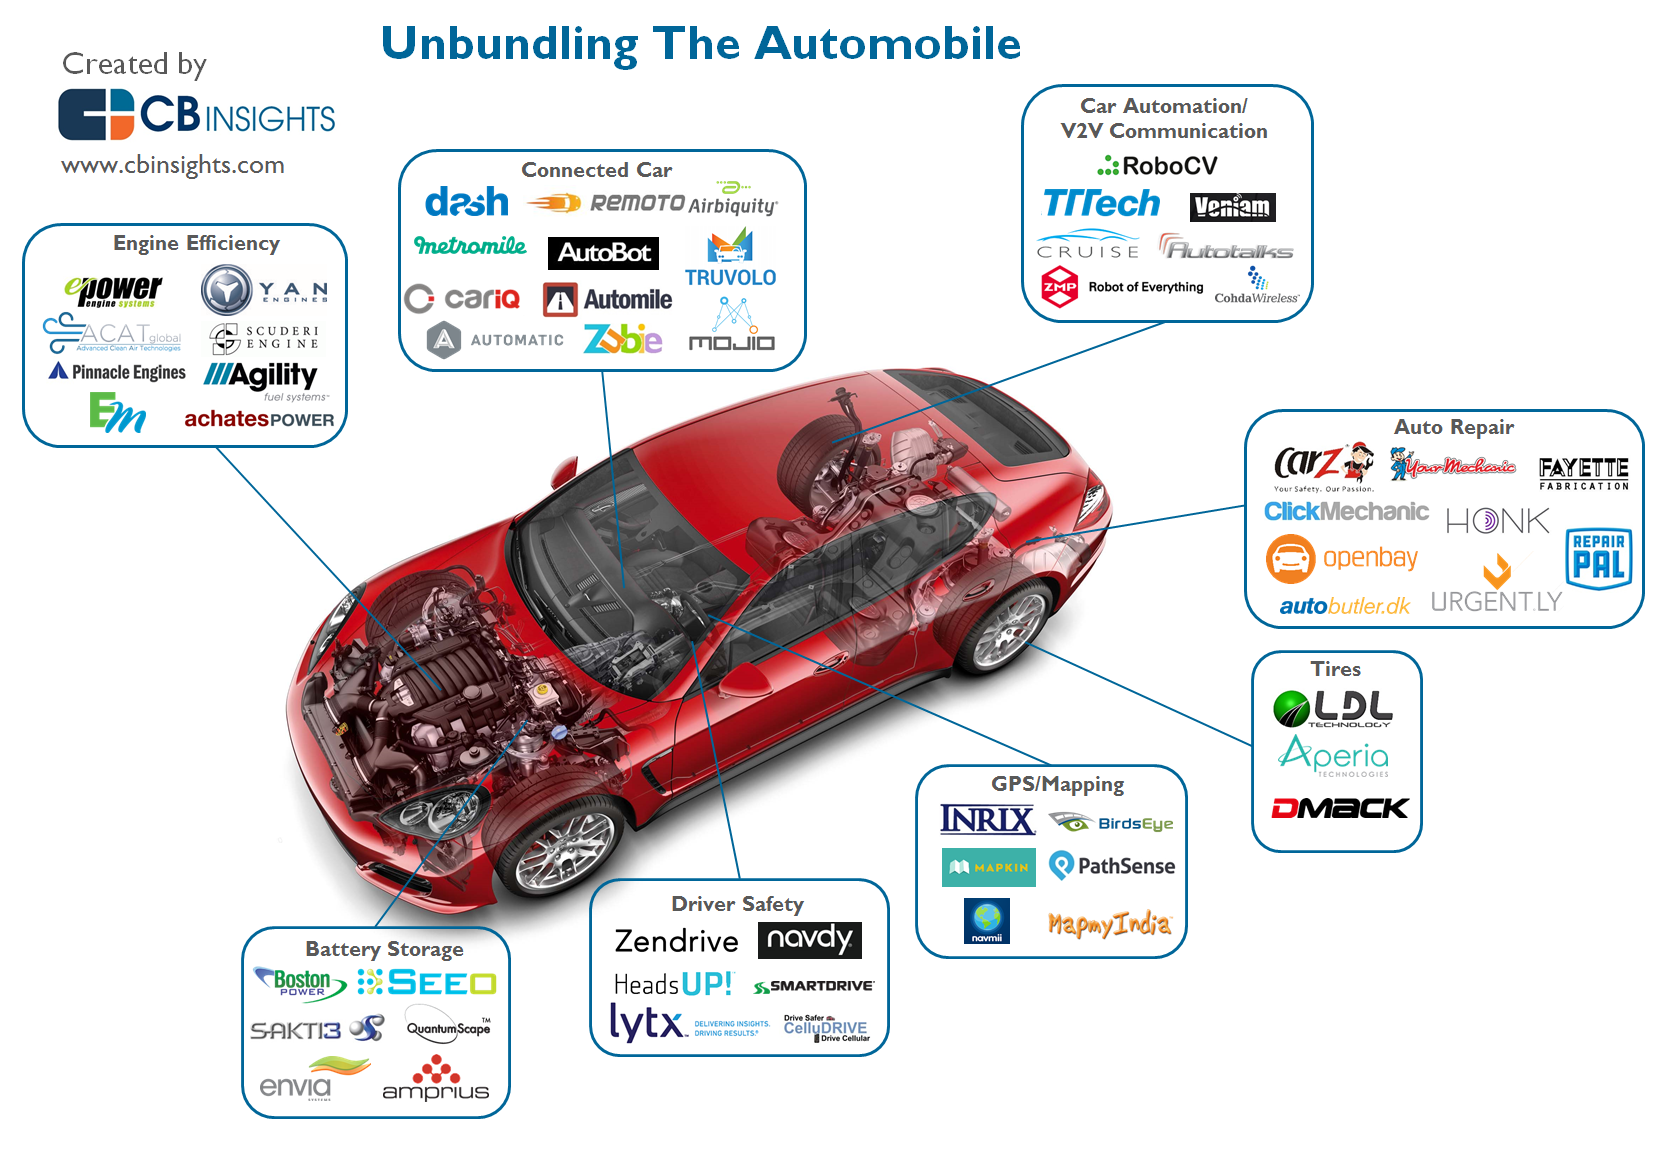 Car Unbundled